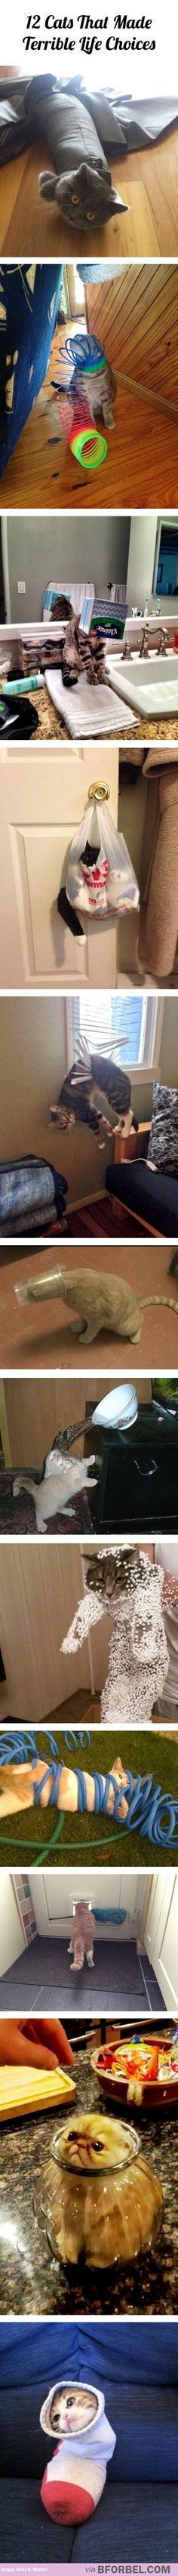 12 cats that made terrible life choices